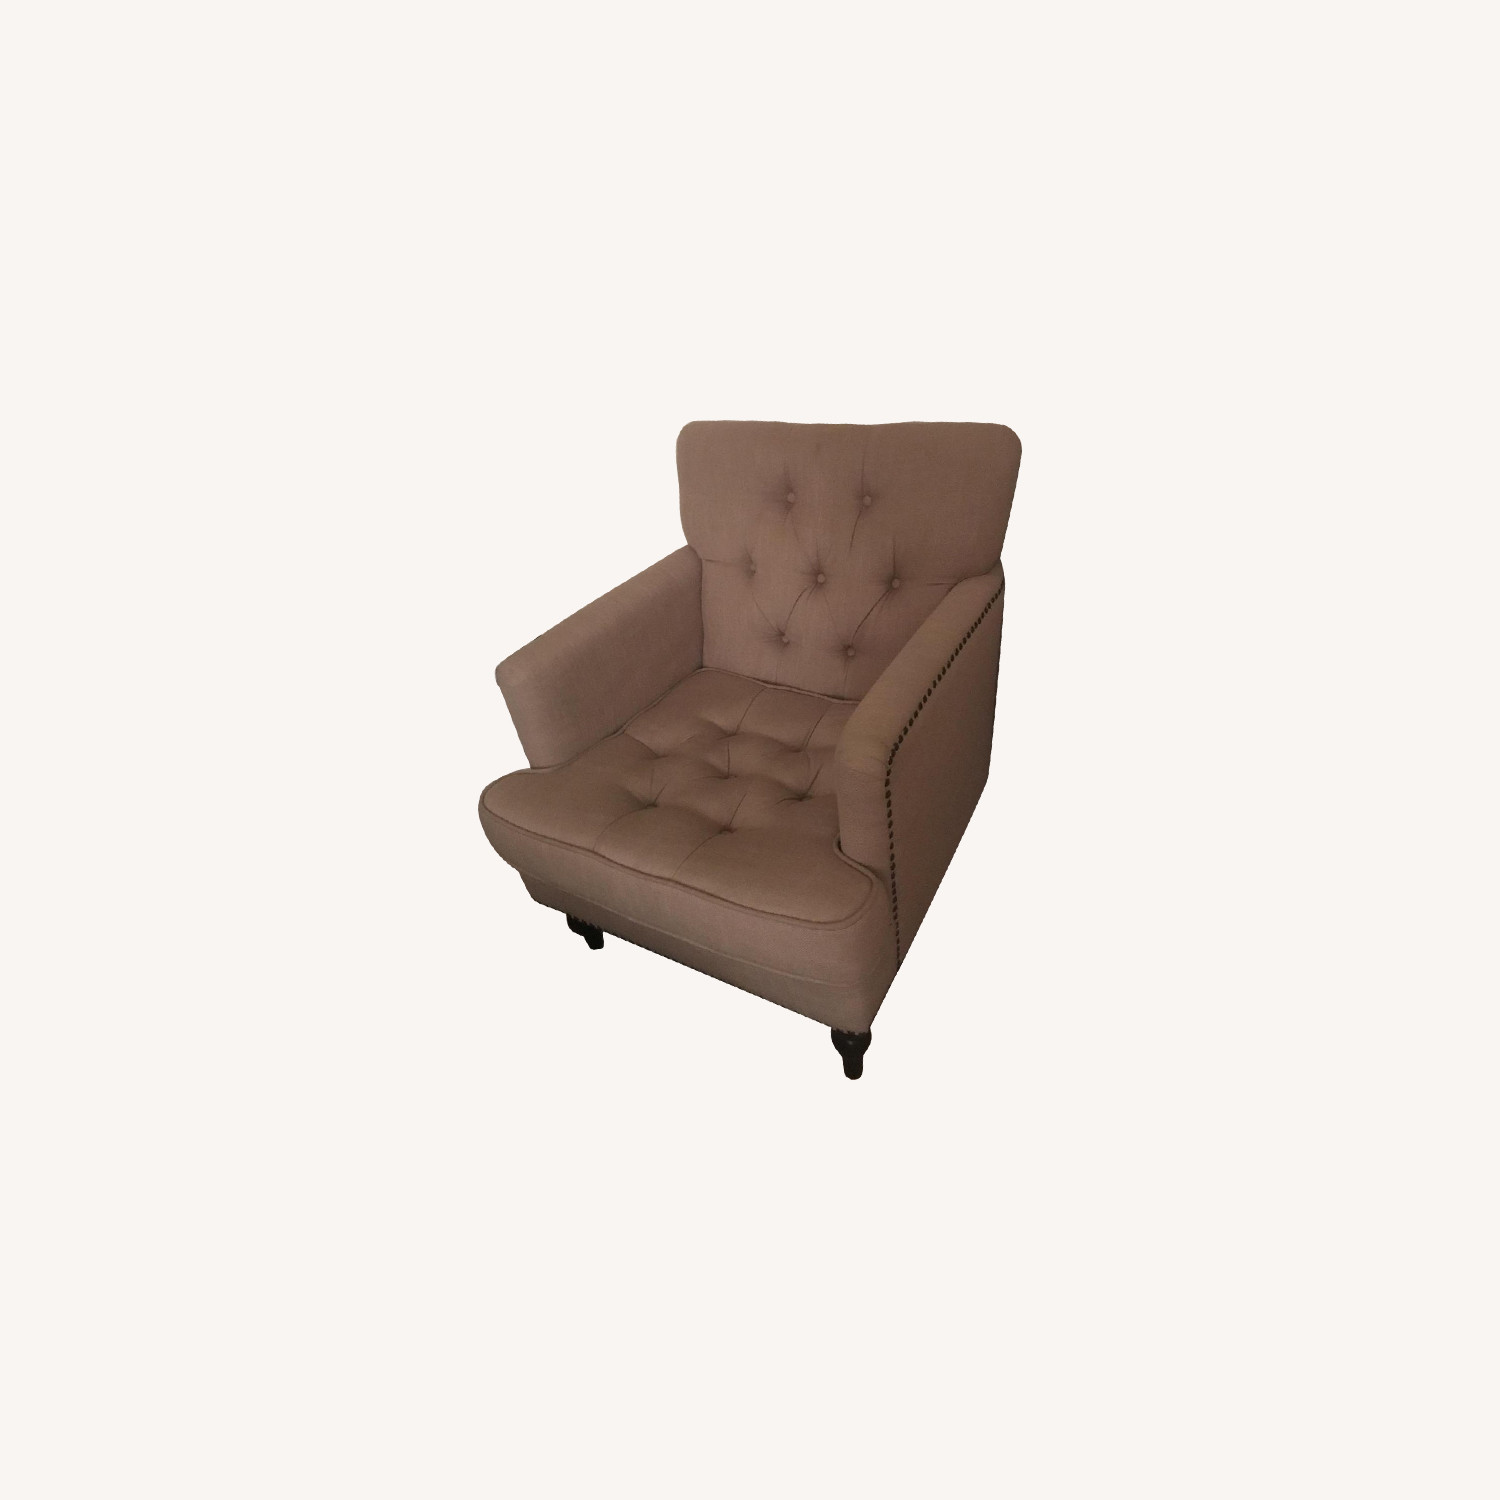 Christopher Knight Home Tufted Arm Chair